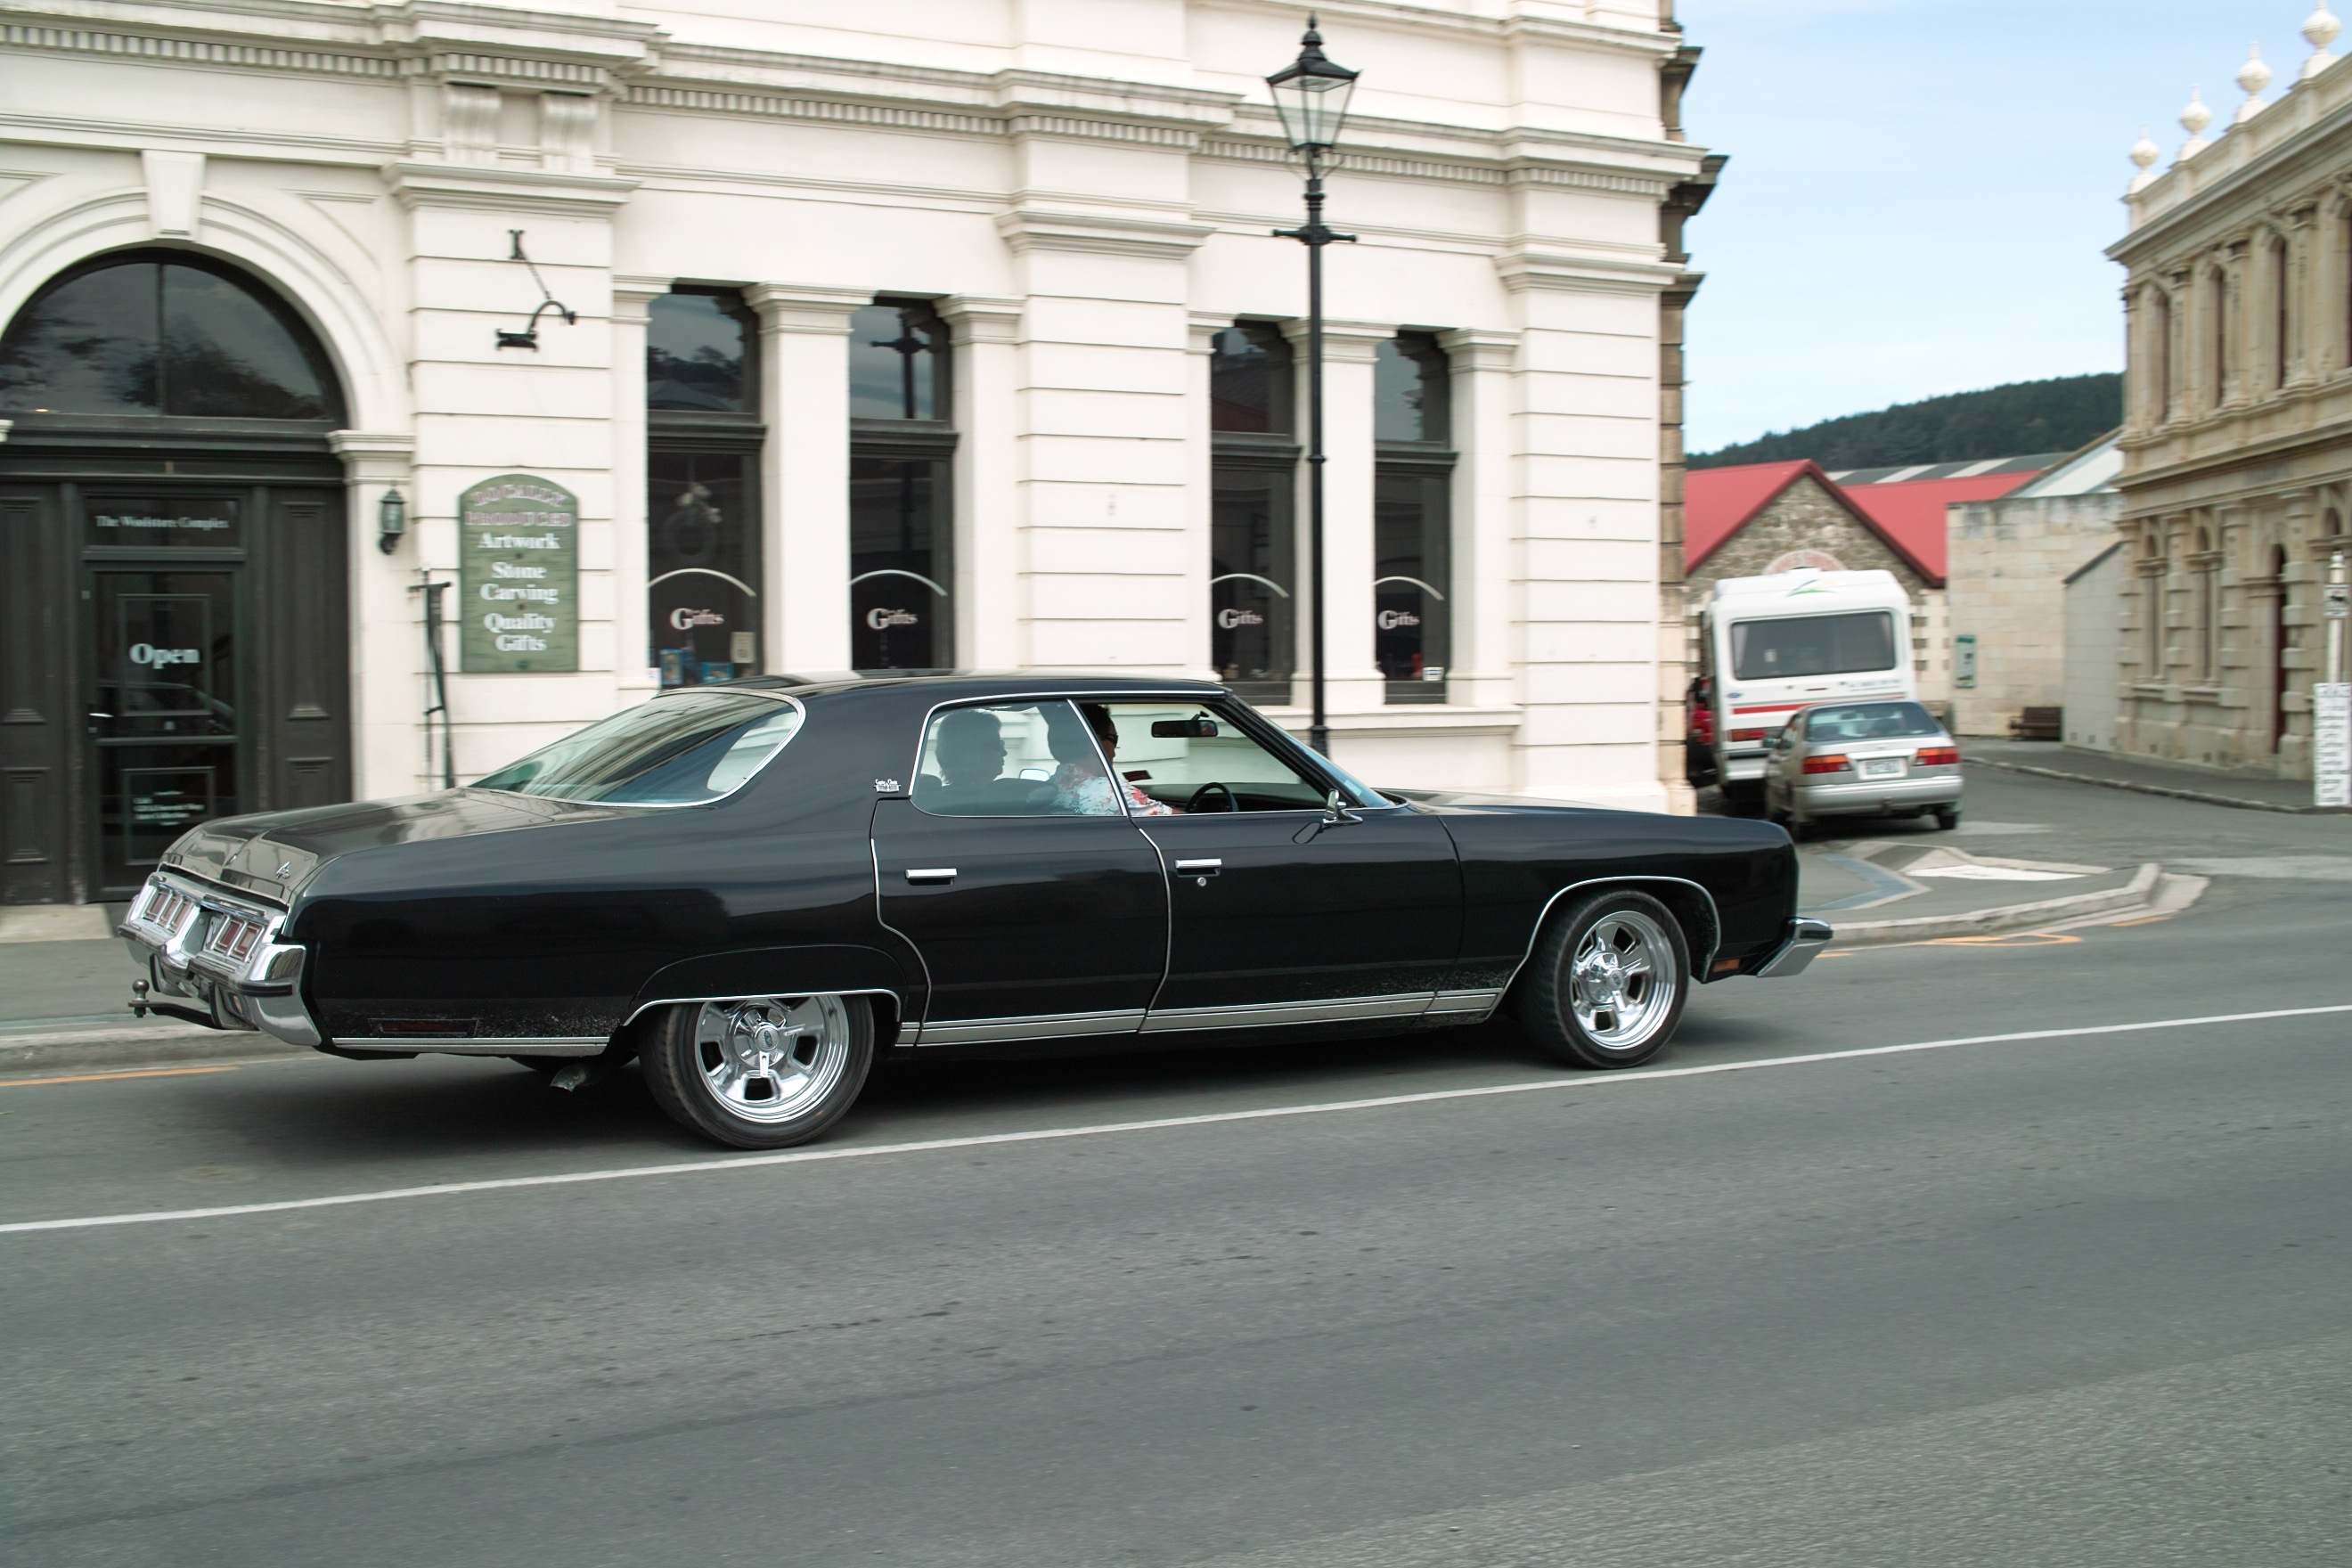 1652 - Oamaru buildings and classic cars